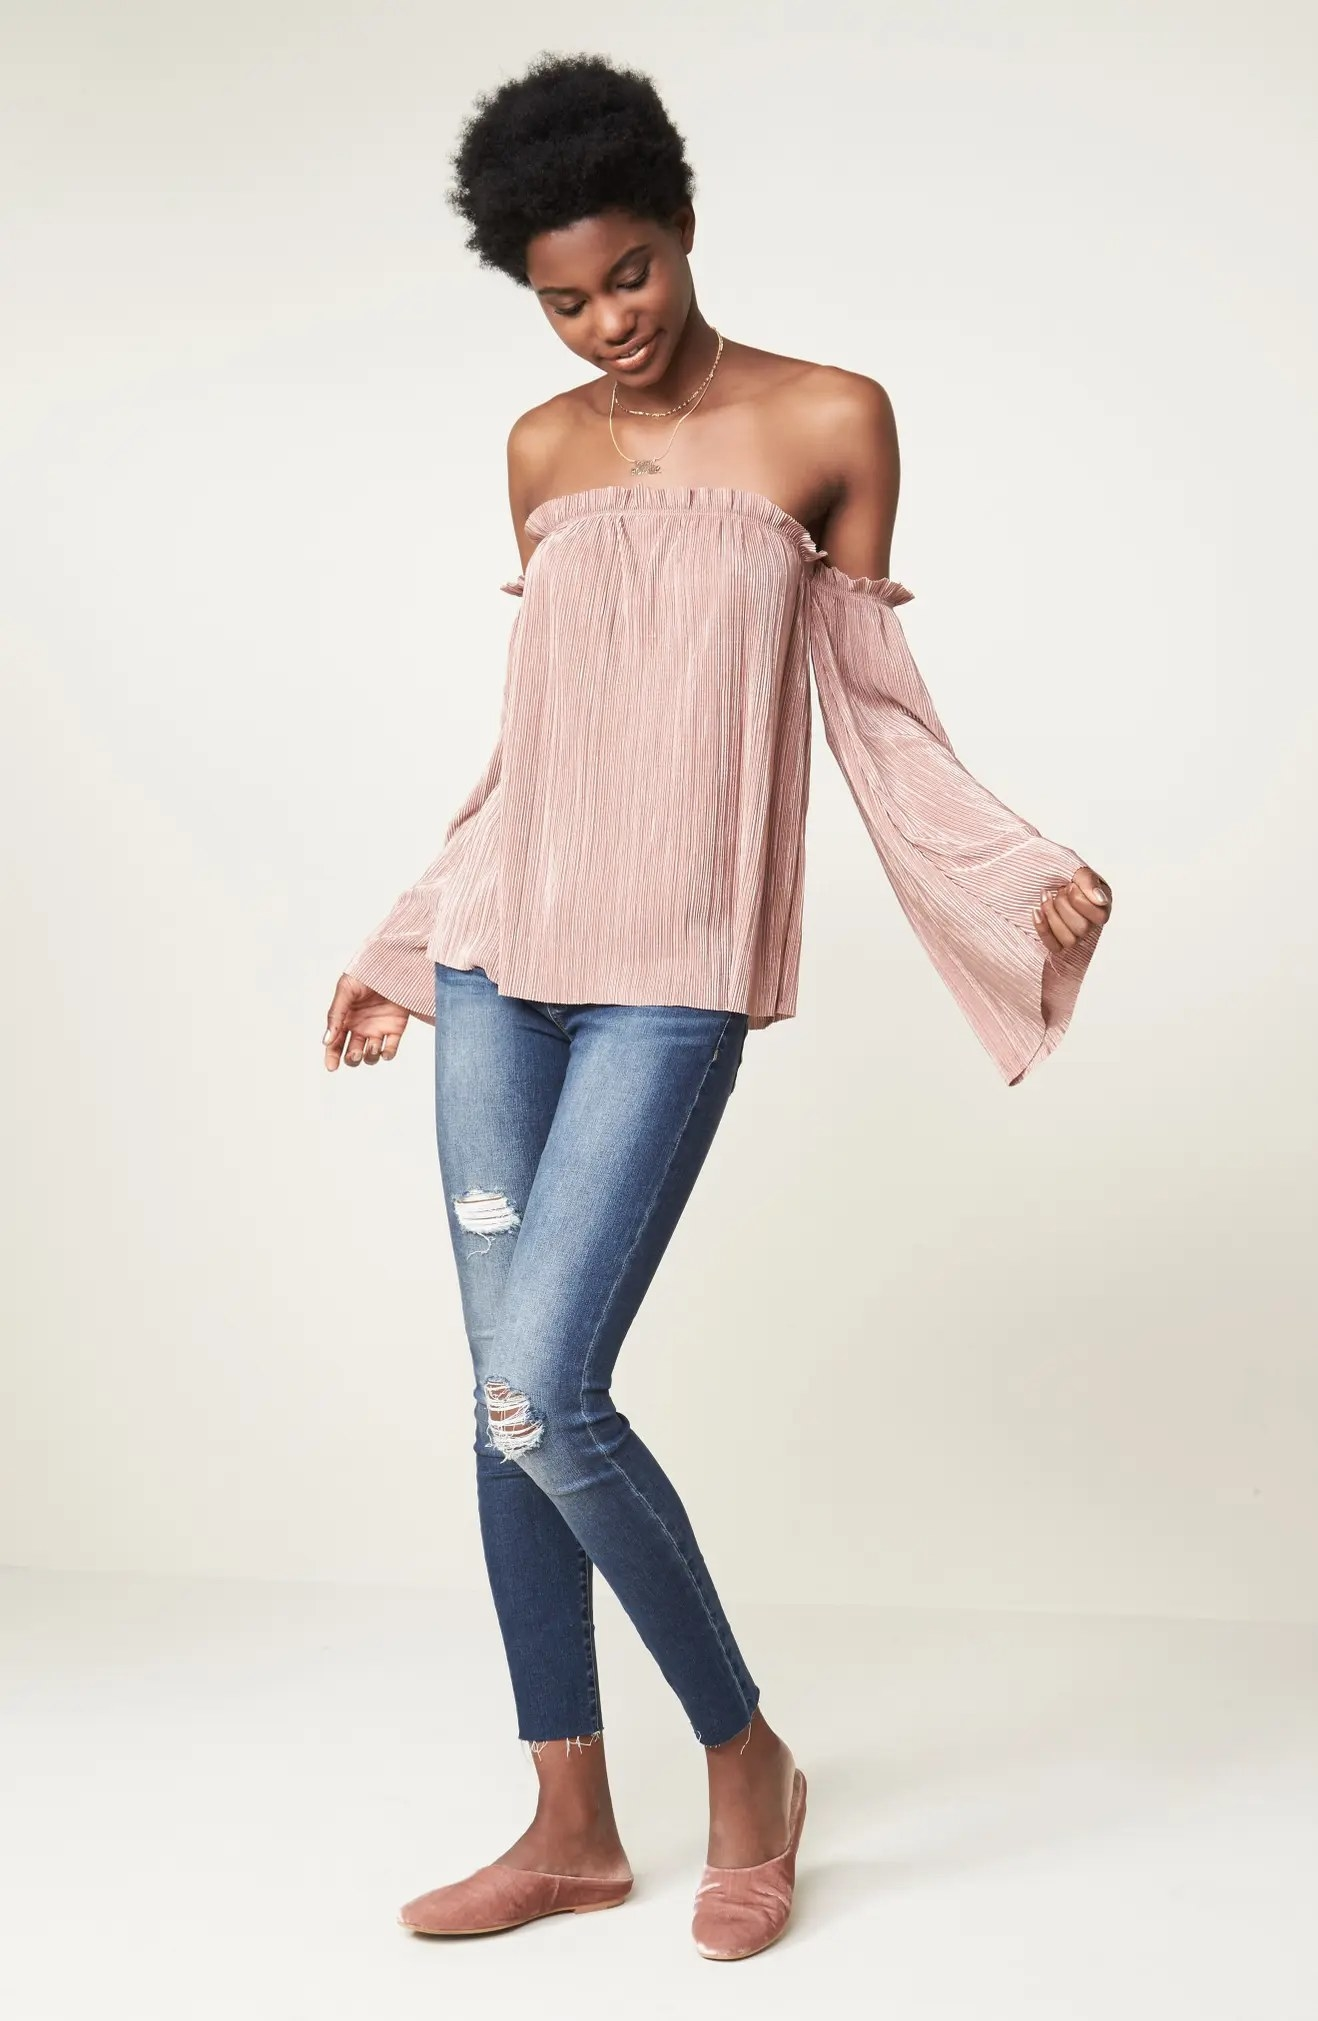 A model wearing the jeans with a pink blouse